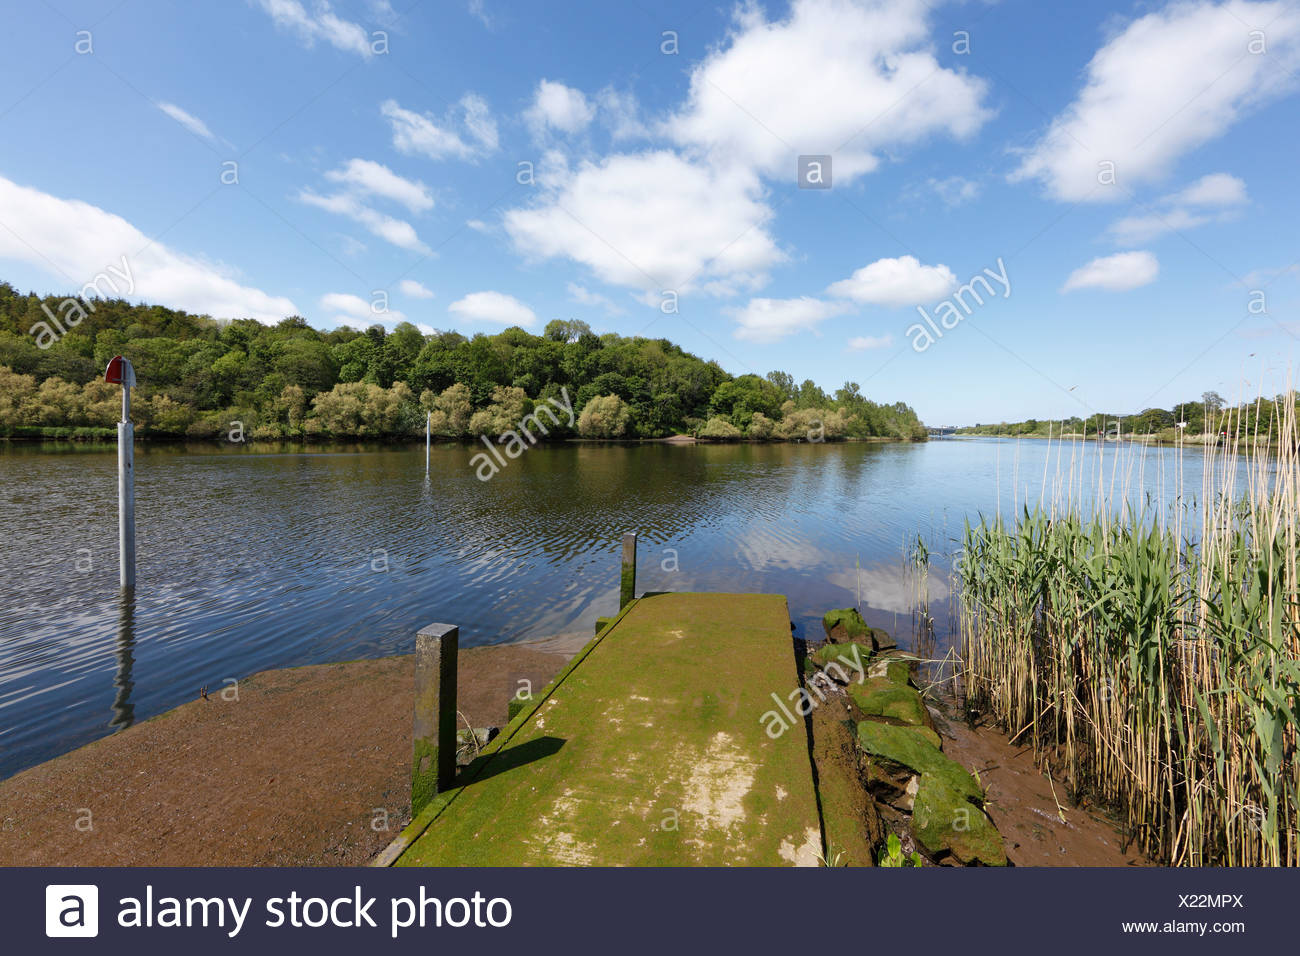 River Bann near Coleraine, County Derry, Northern Ireland, Great Britain, Europe - Stock Image